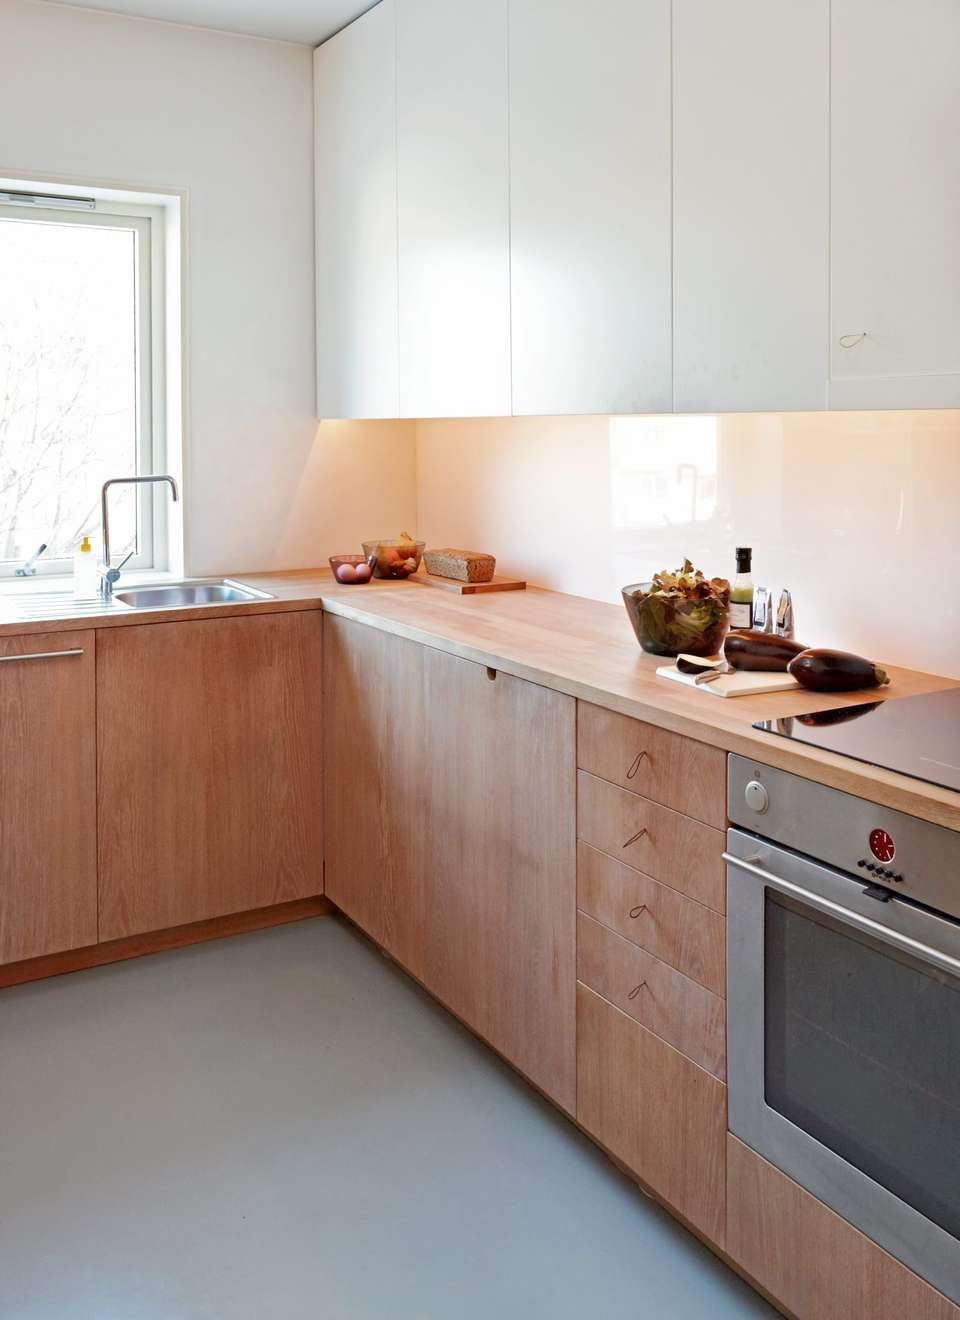 notice the shoe lace handles, are they effective?  looks great though.  Norway kitchen via  klikk.no